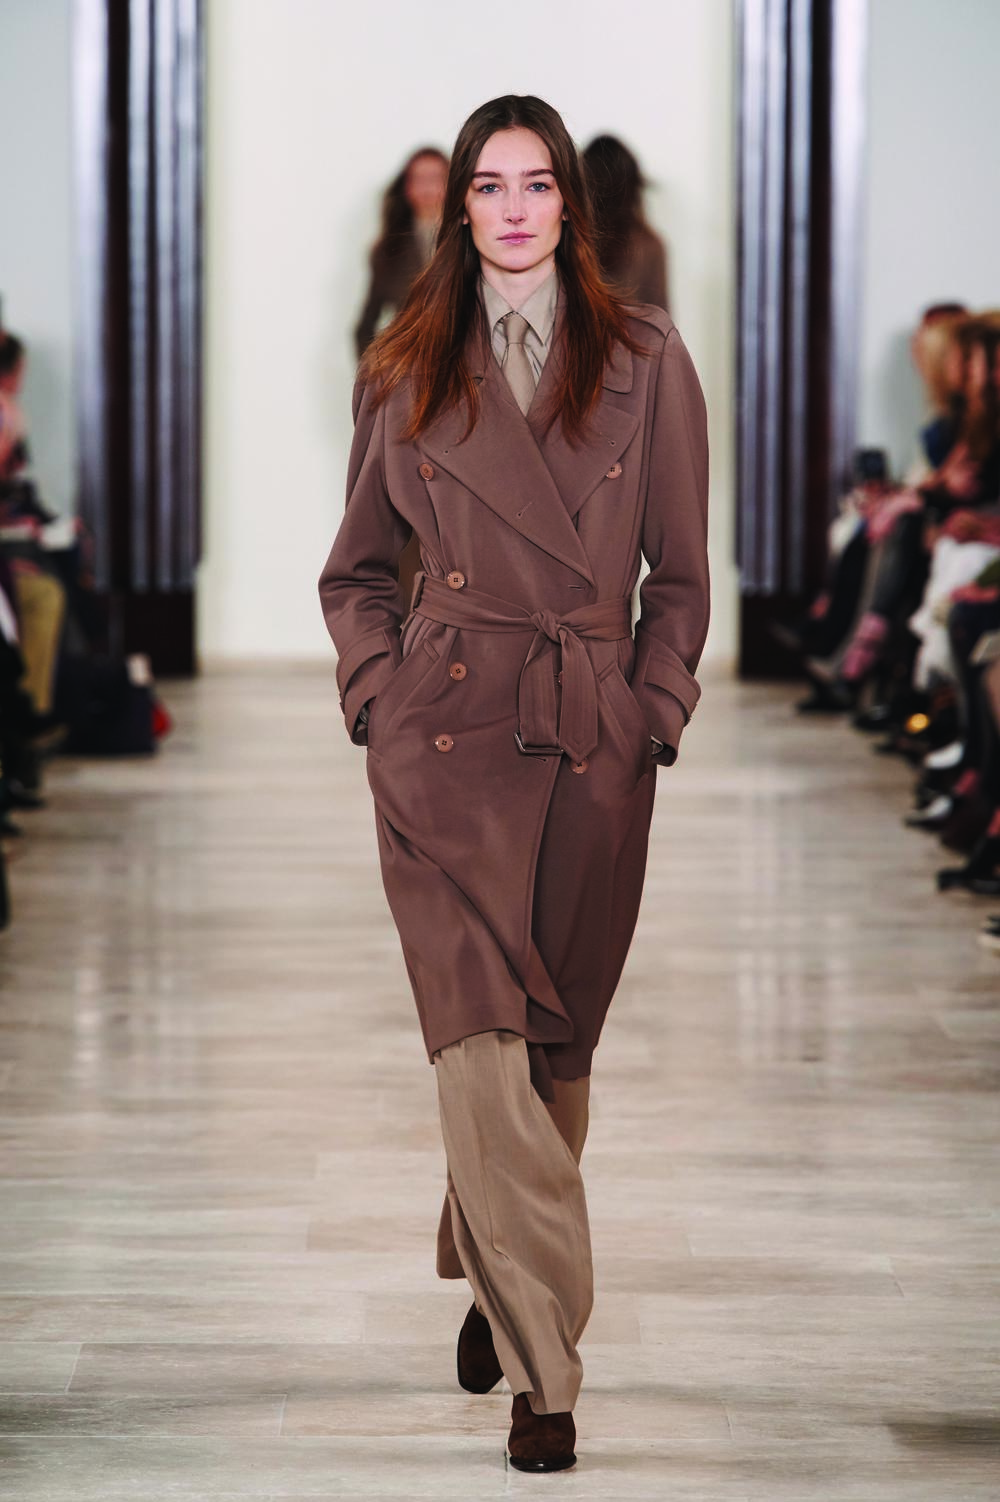 Ralph_Lauren_Fall_2016_Collection_-_Look_06.jpg_cmyk.jpg